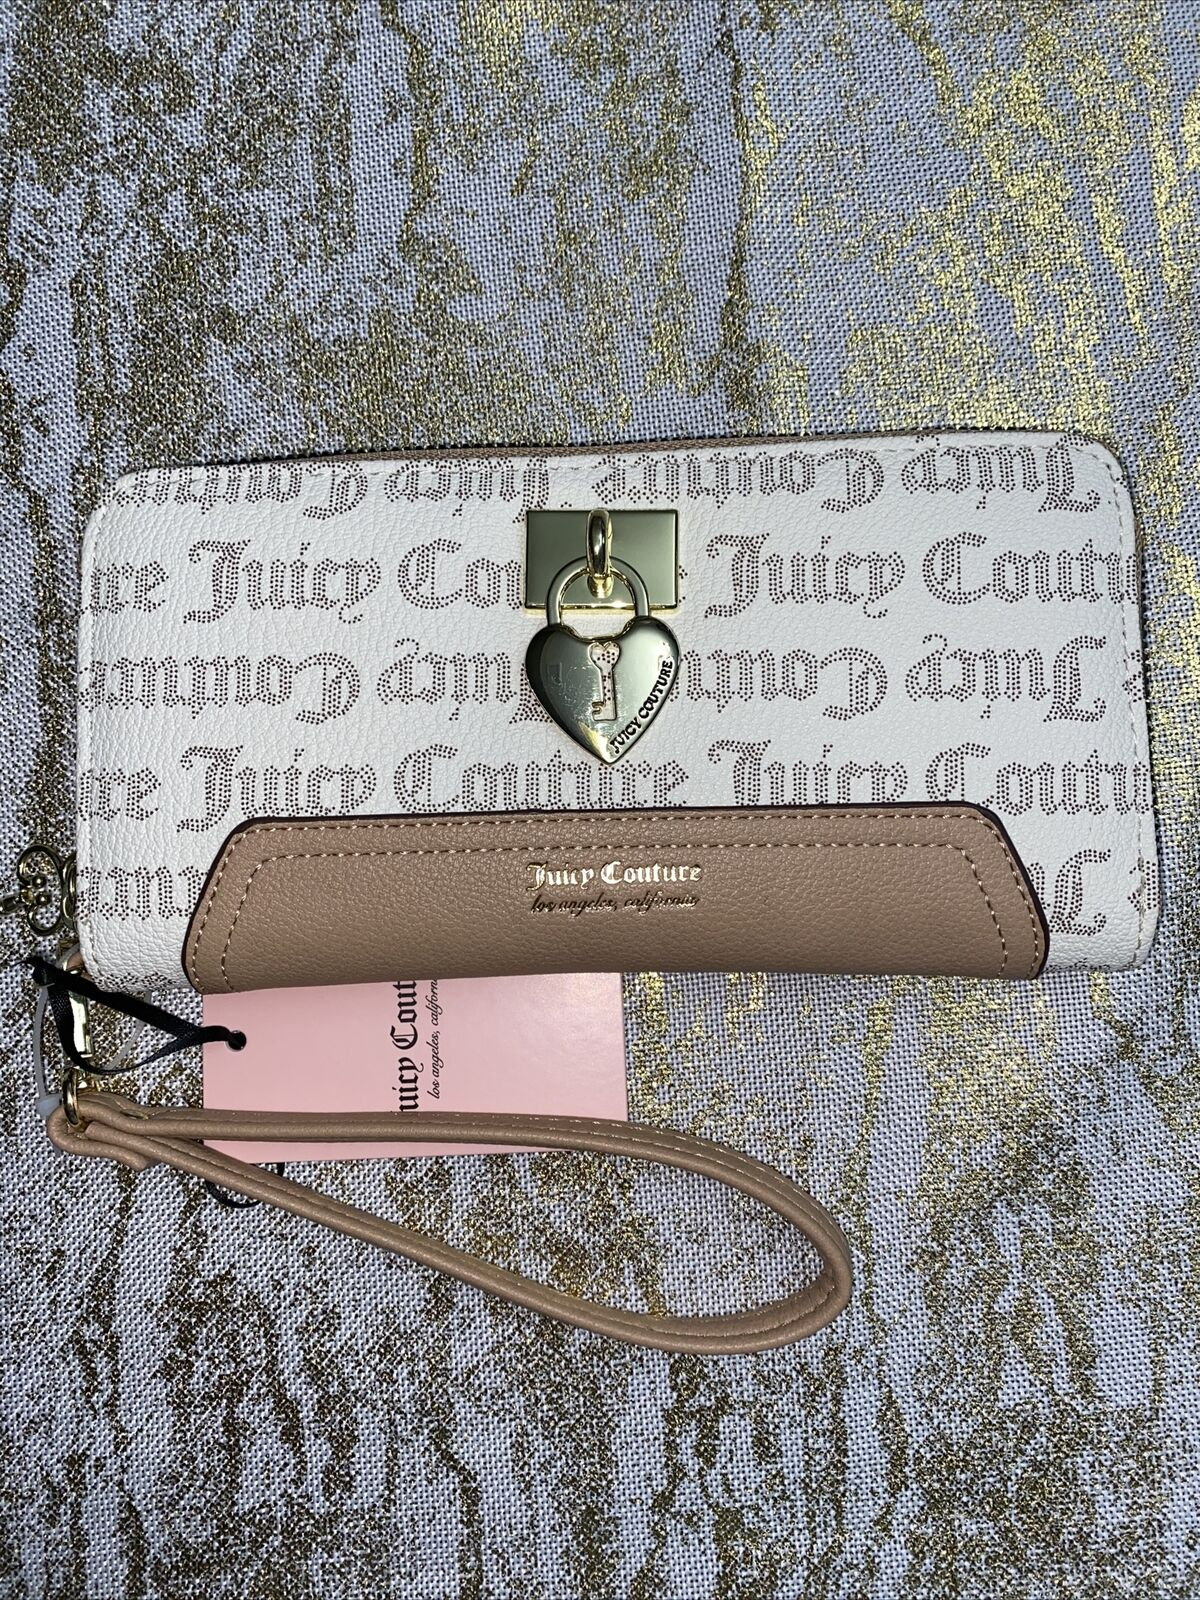 JUICY COUTURE Wallet-Wristlet PECAN-WHITE GOTHIC LOGO Gold Heart Zip Large NEW